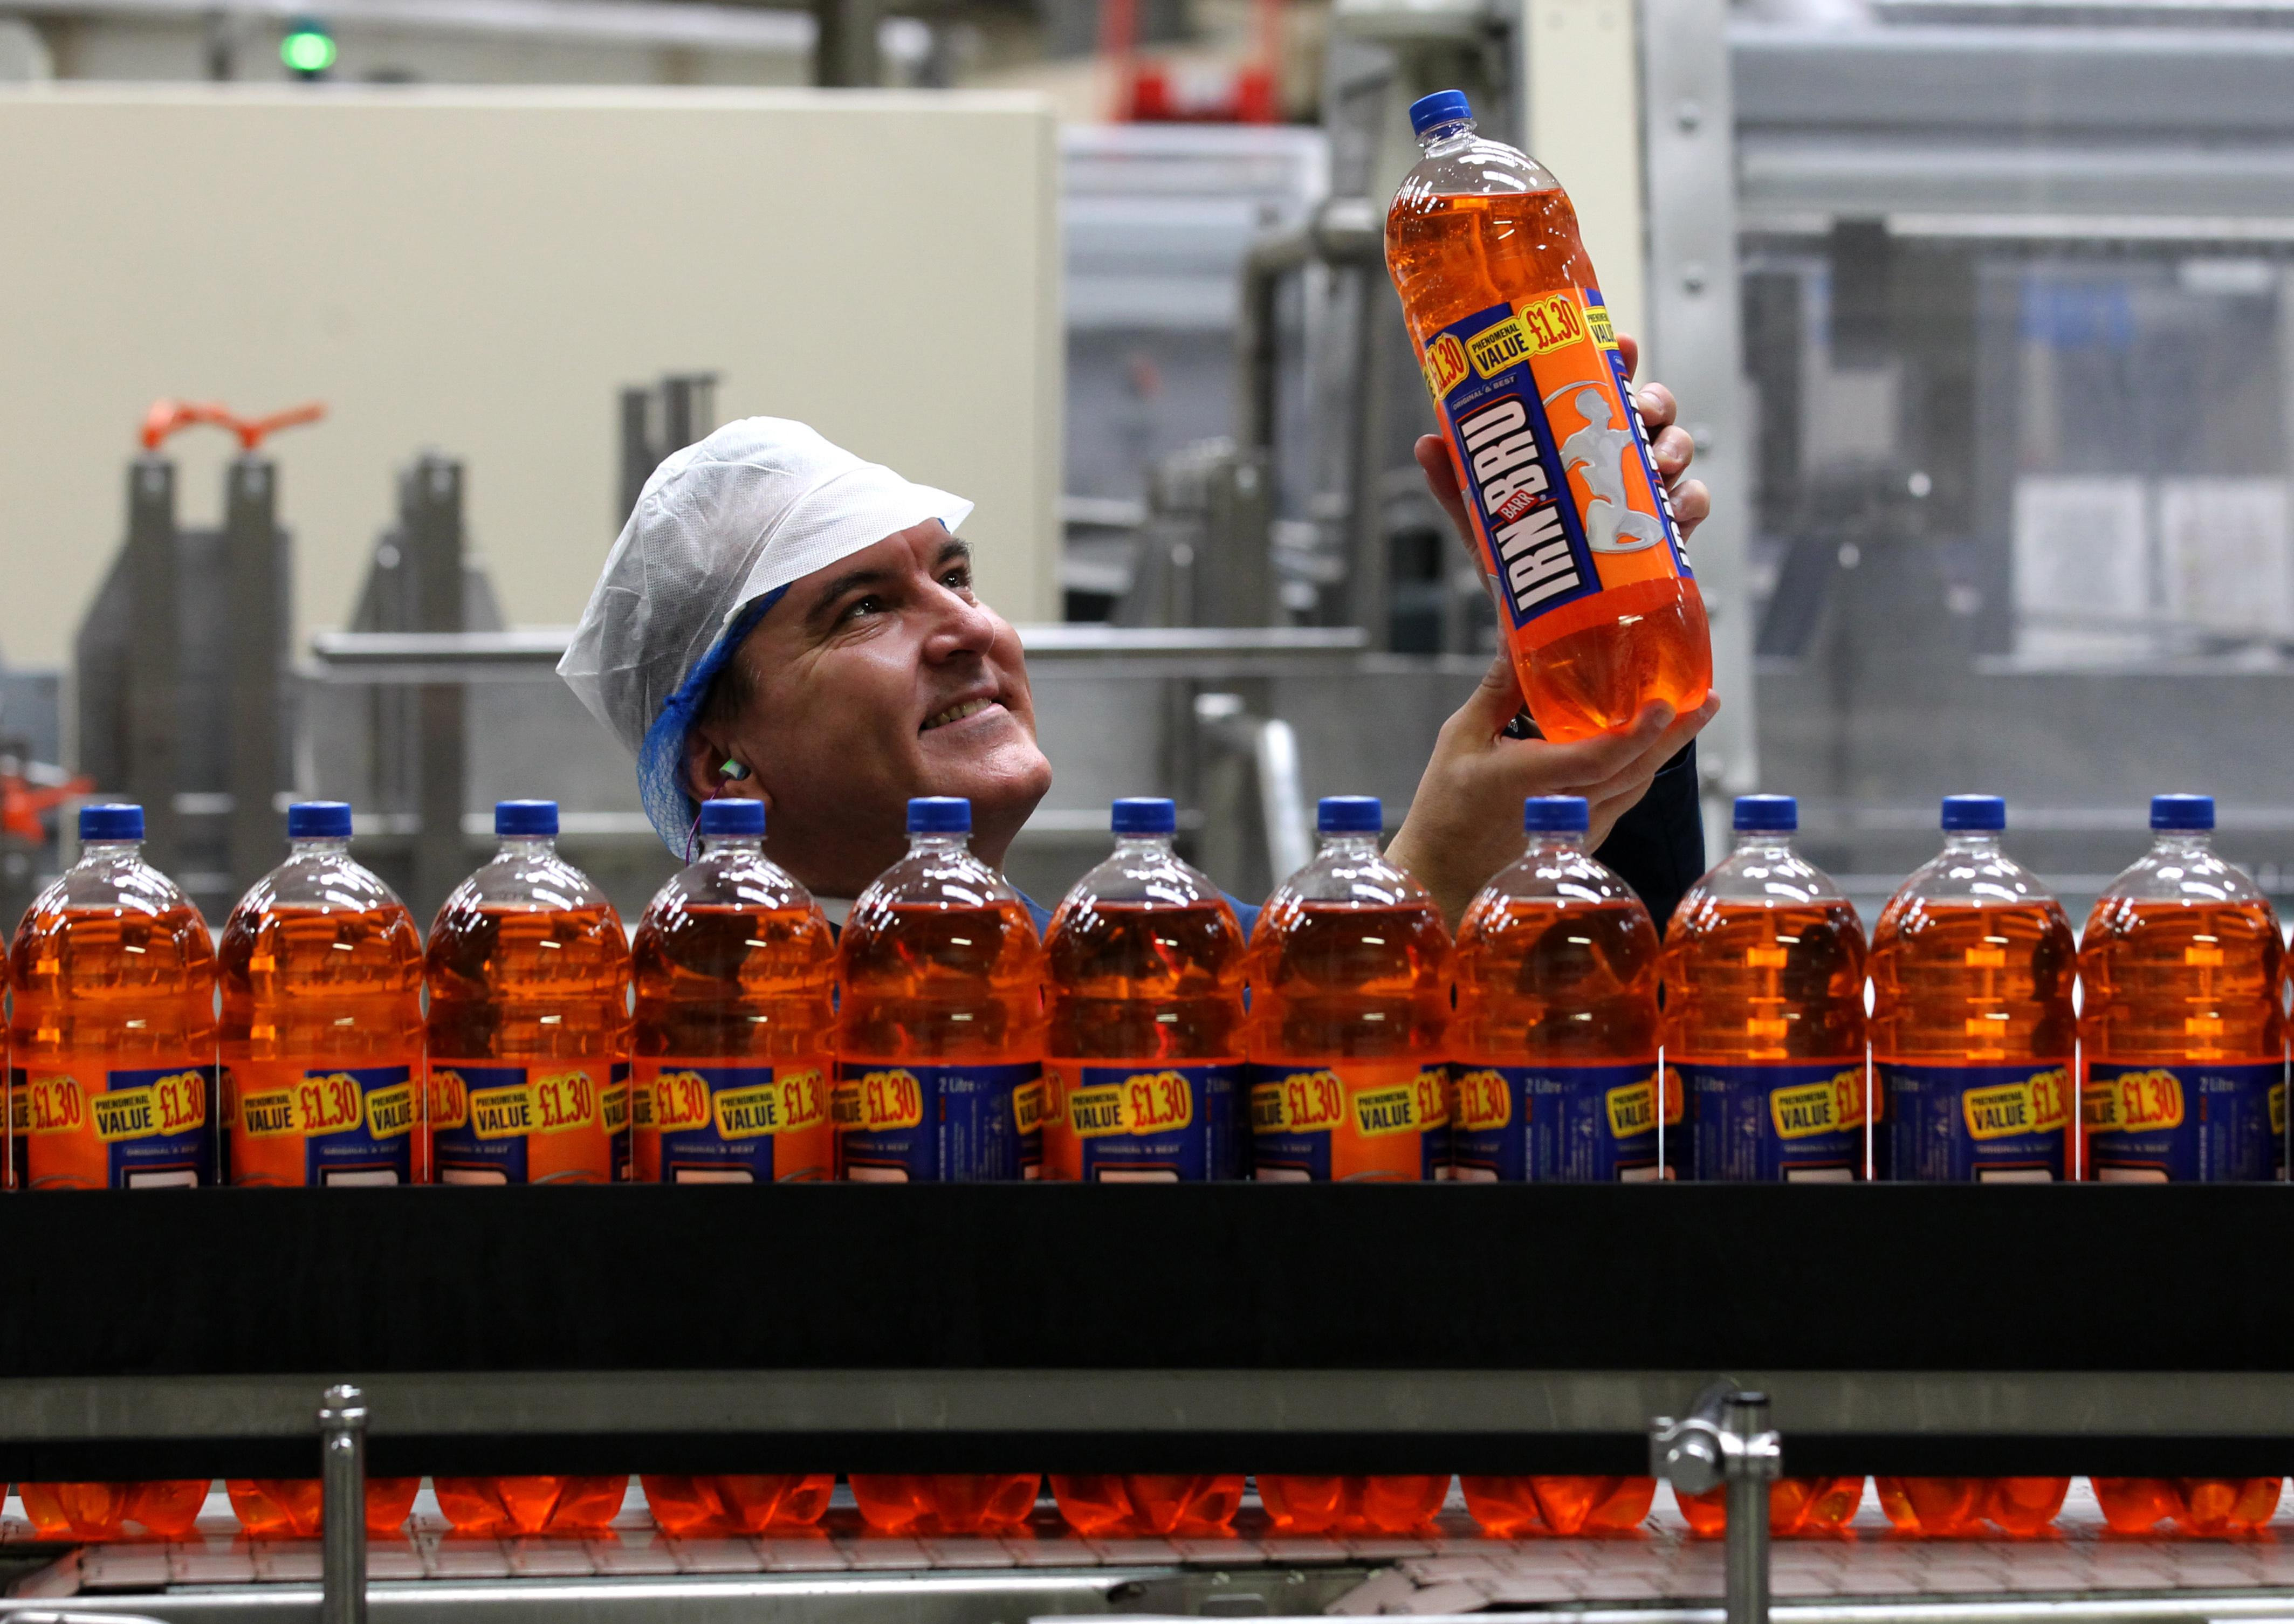 This isn't the first time the makers of the iconic fizzy drink have ventured into the energy drink world. Credit: PA